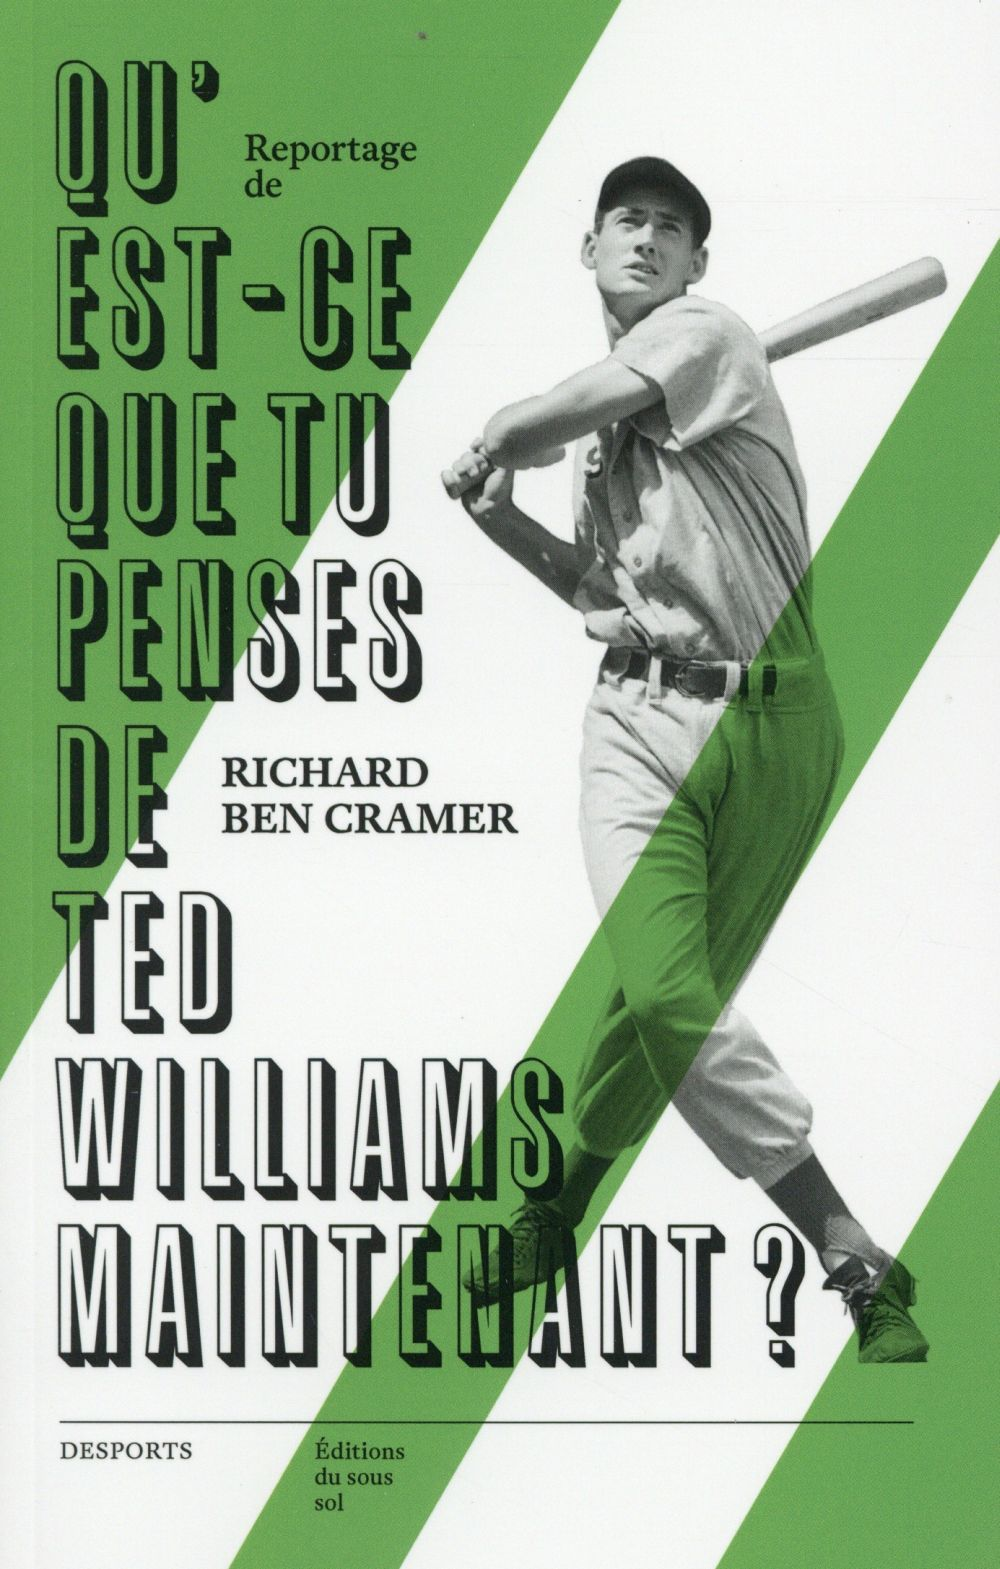 QU'EST CE QUE TU PENSES DE TED WILLIAMS MAINTENANT ?